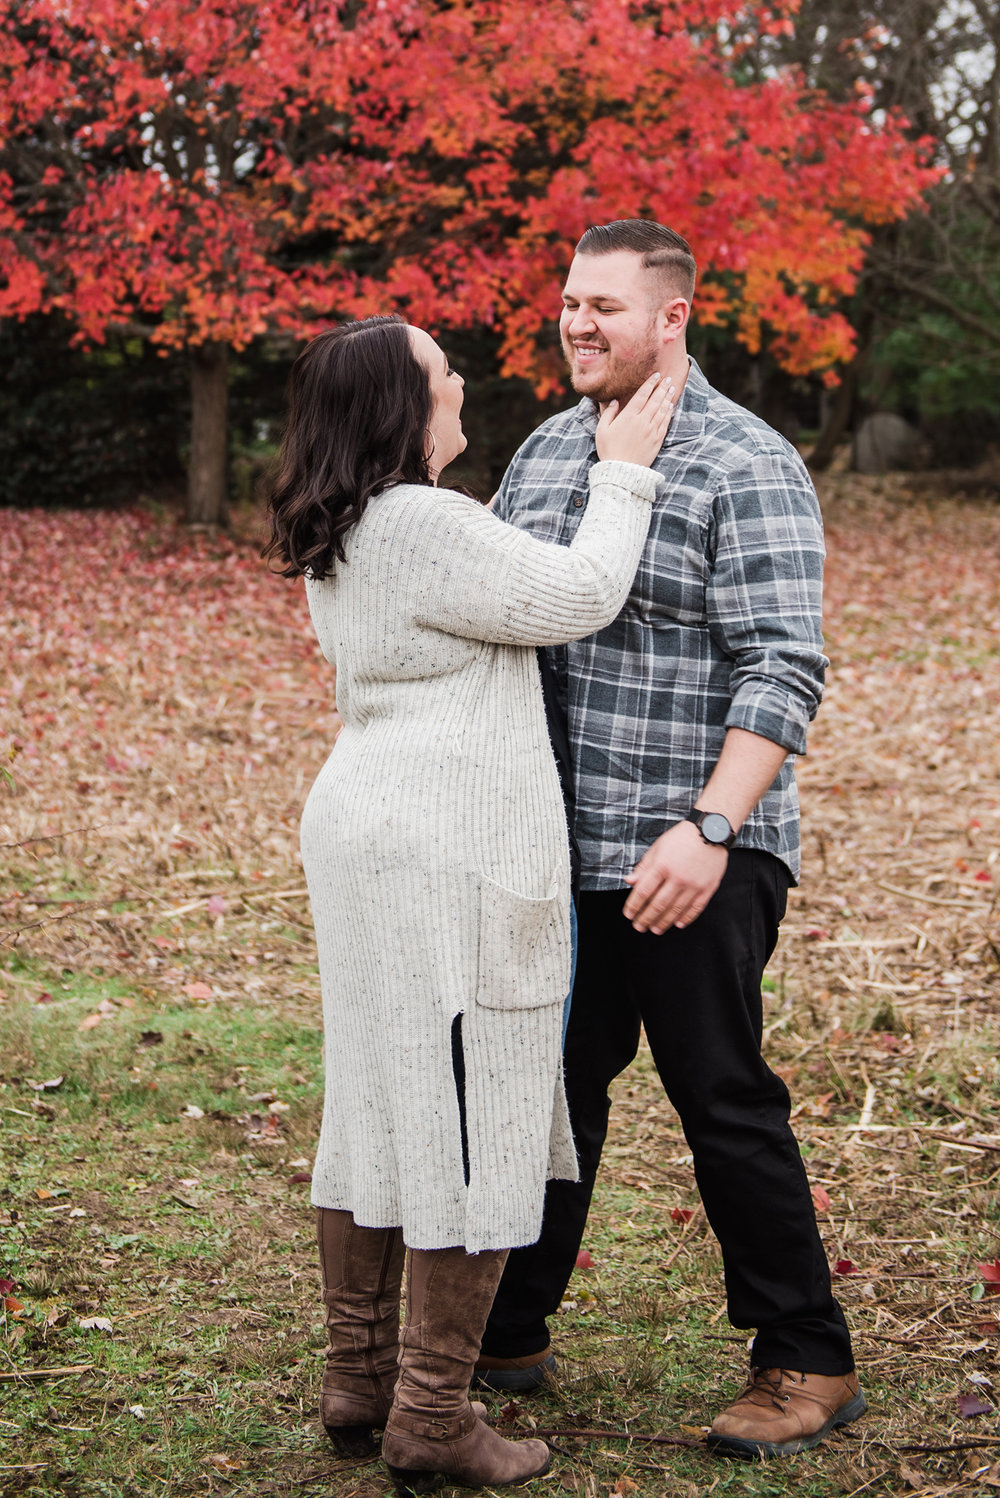 Tinker_Nature_Park_Rochester_Engagement_Session_JILL_STUDIO_Rochester_NY_Photographer_DSC_0432.jpg